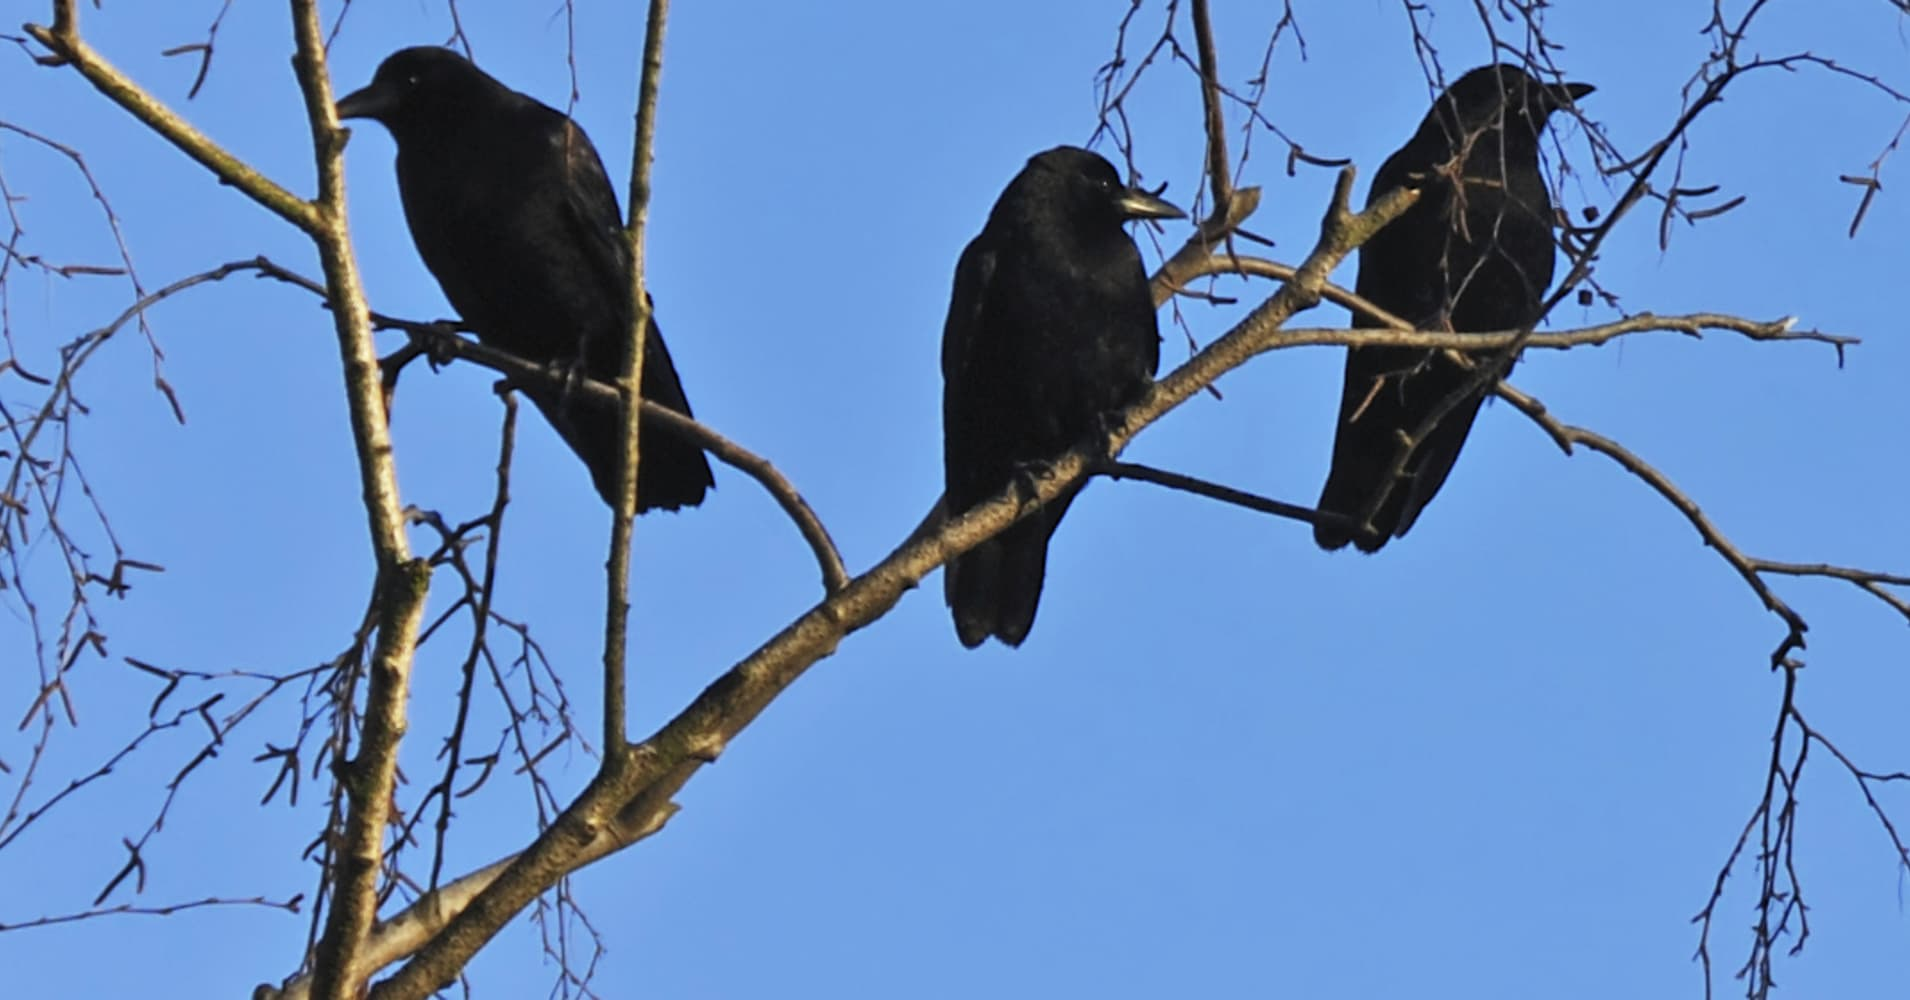 Three black crows